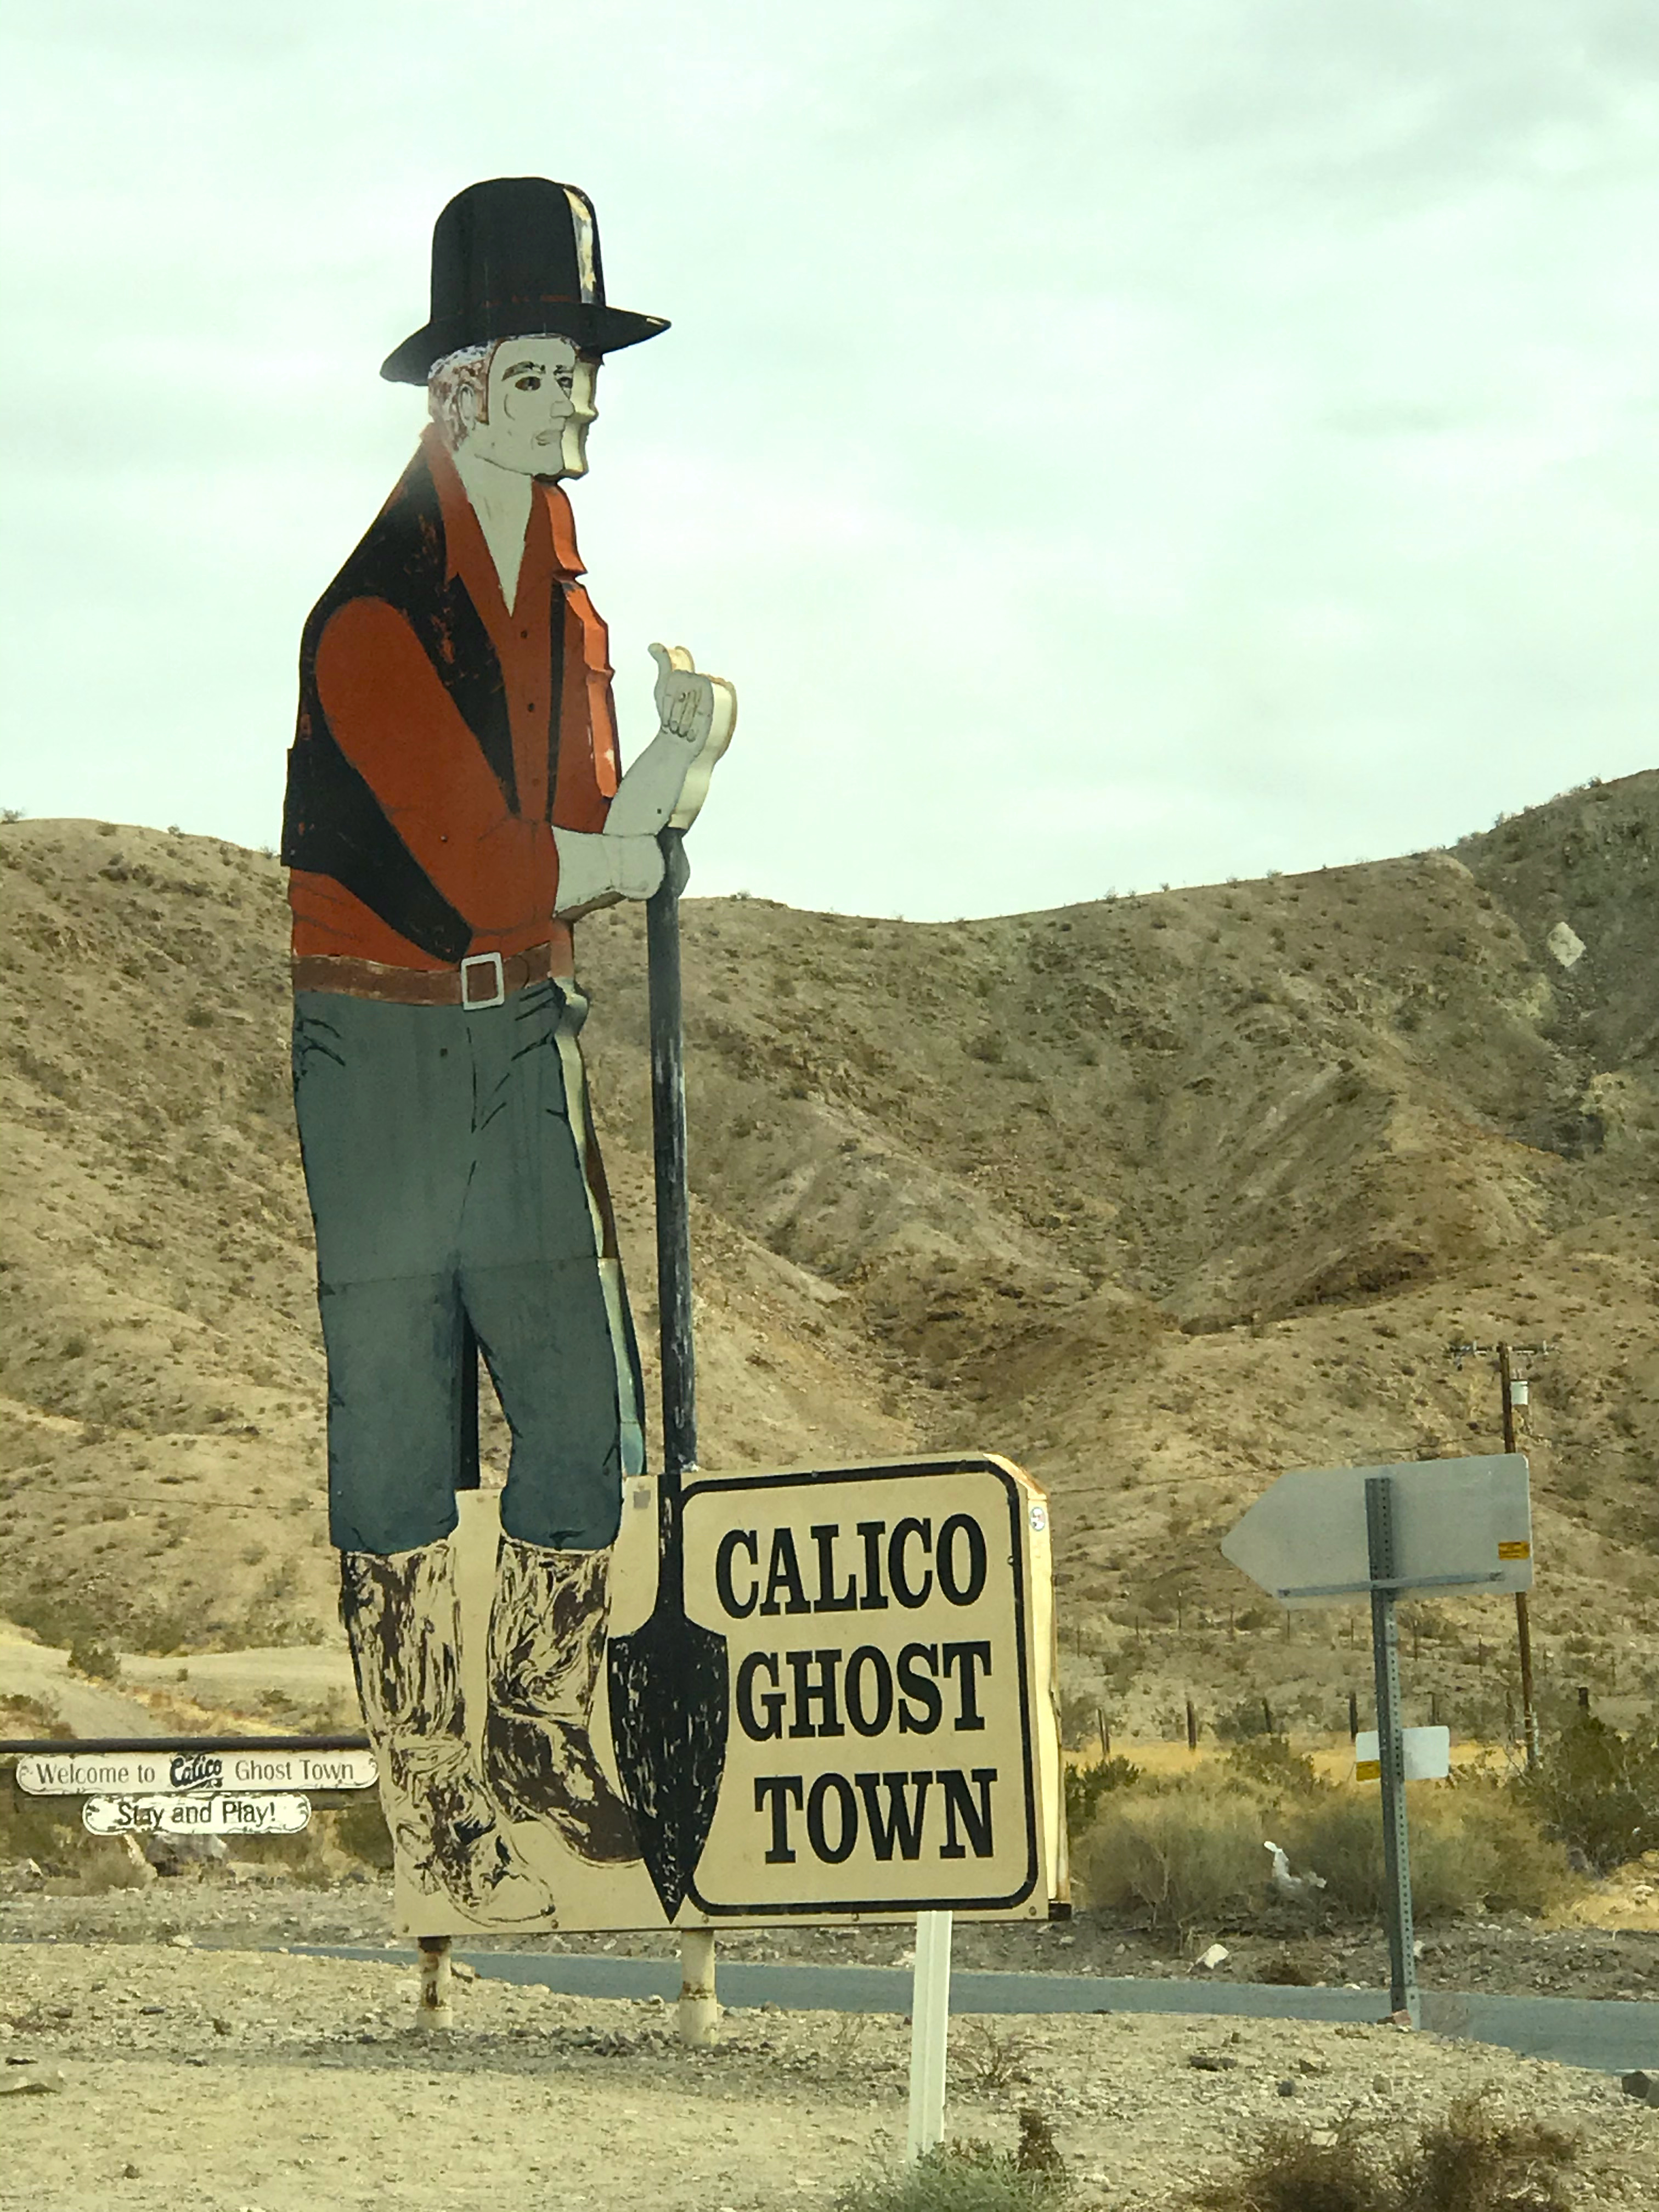 California's Calico Ghost Town! Revisit The Wild West And Calico's Abandoned Silver Mines!